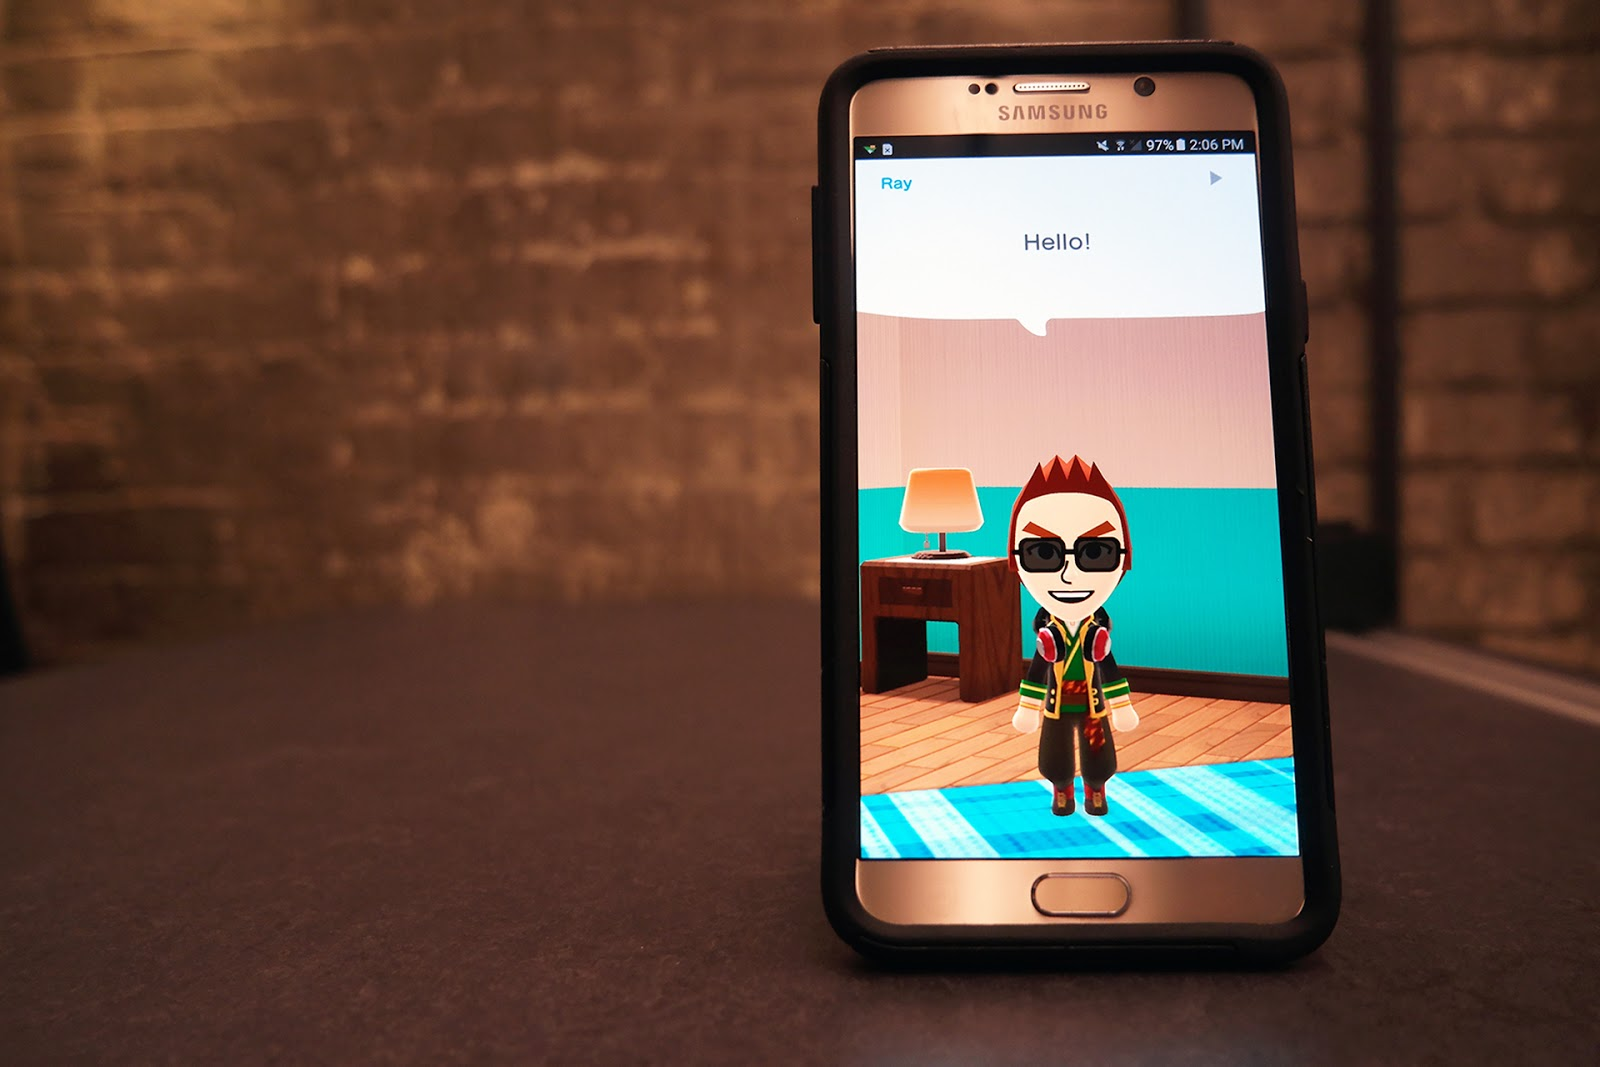 Miitomo running on Samsung Galaxy Note 5 =